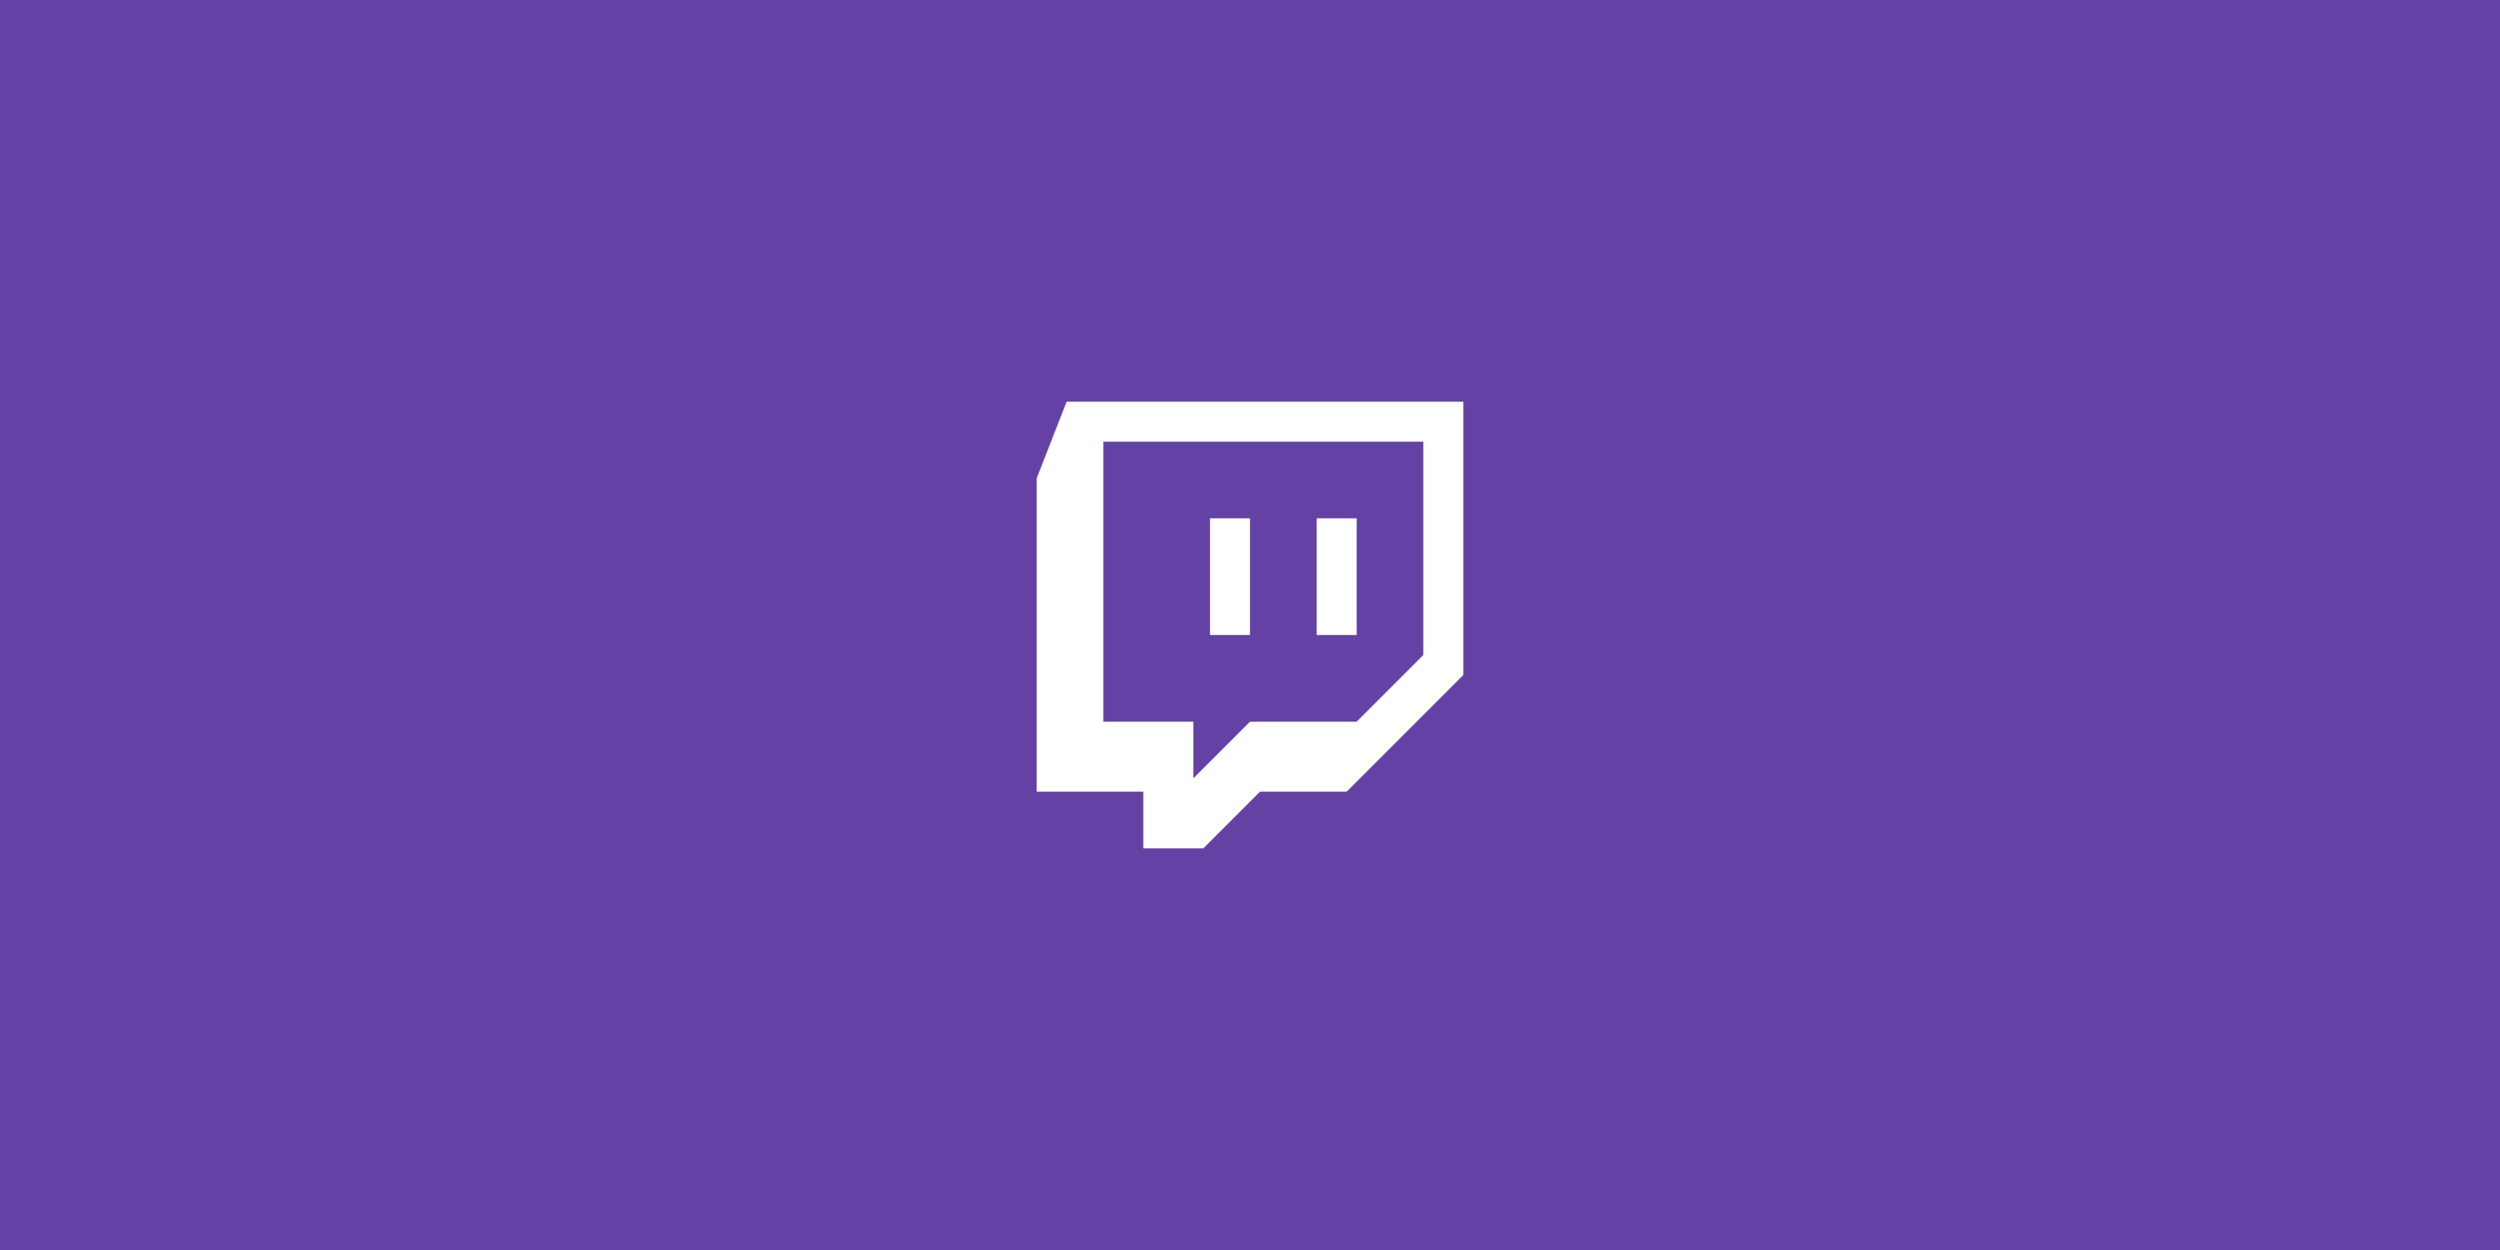 Twitch Multiview - Twitch.tv is a social gaming platform for live gaming and creative streams. During this project I explored how to incorporate a new feature into the experience that allowed for two streams to be viewed simultaneously.